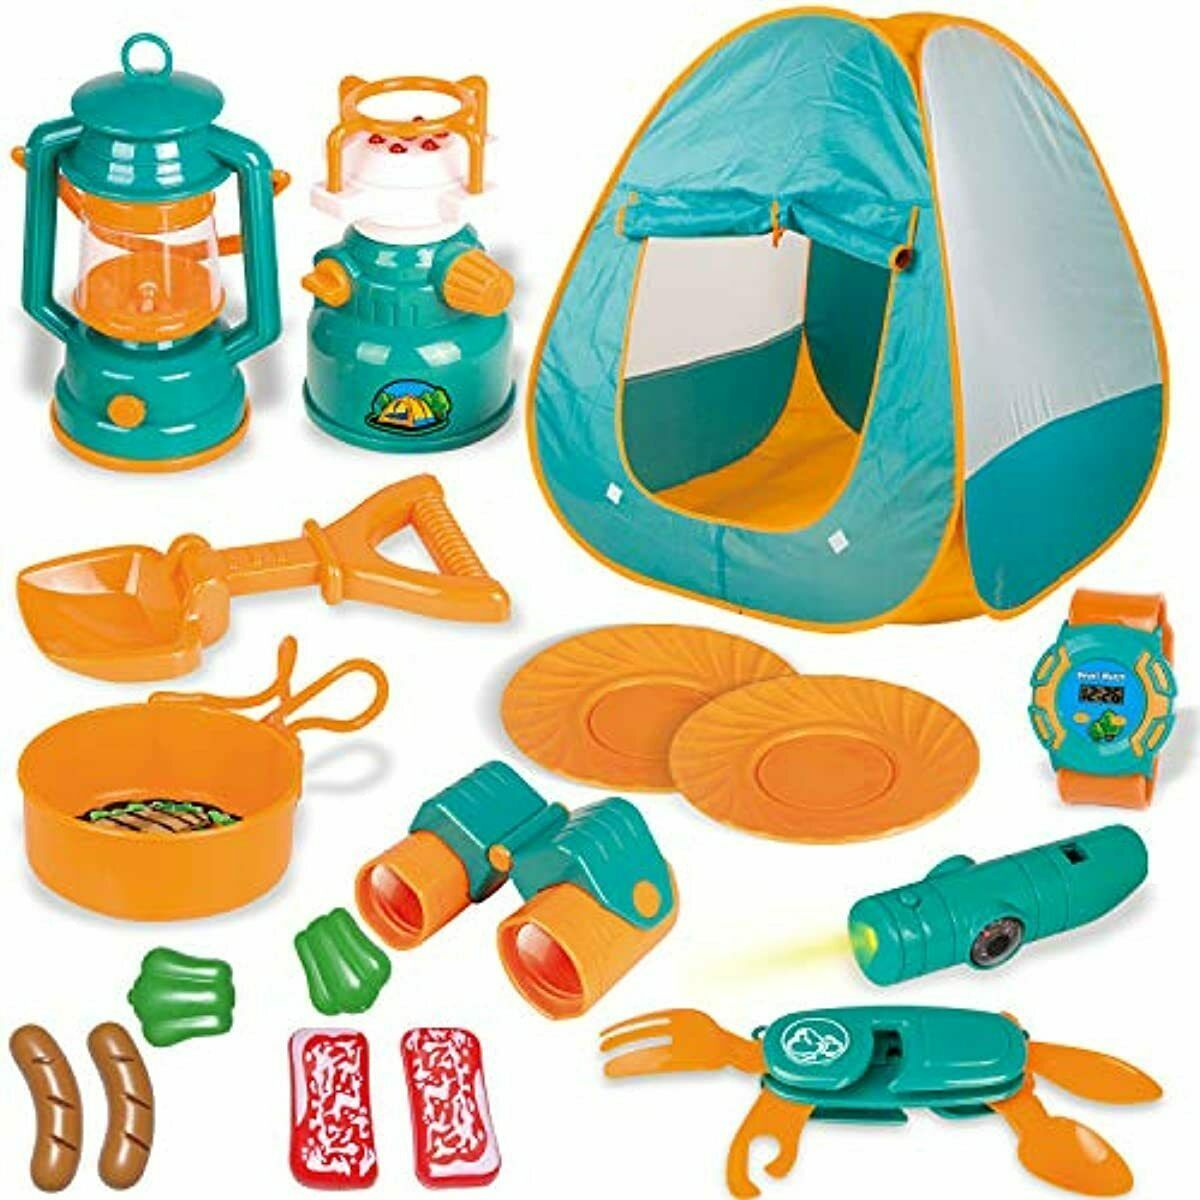 FUN LITTLE TOYS Kids Play Tent, Pop Up Tent with Kids Campin